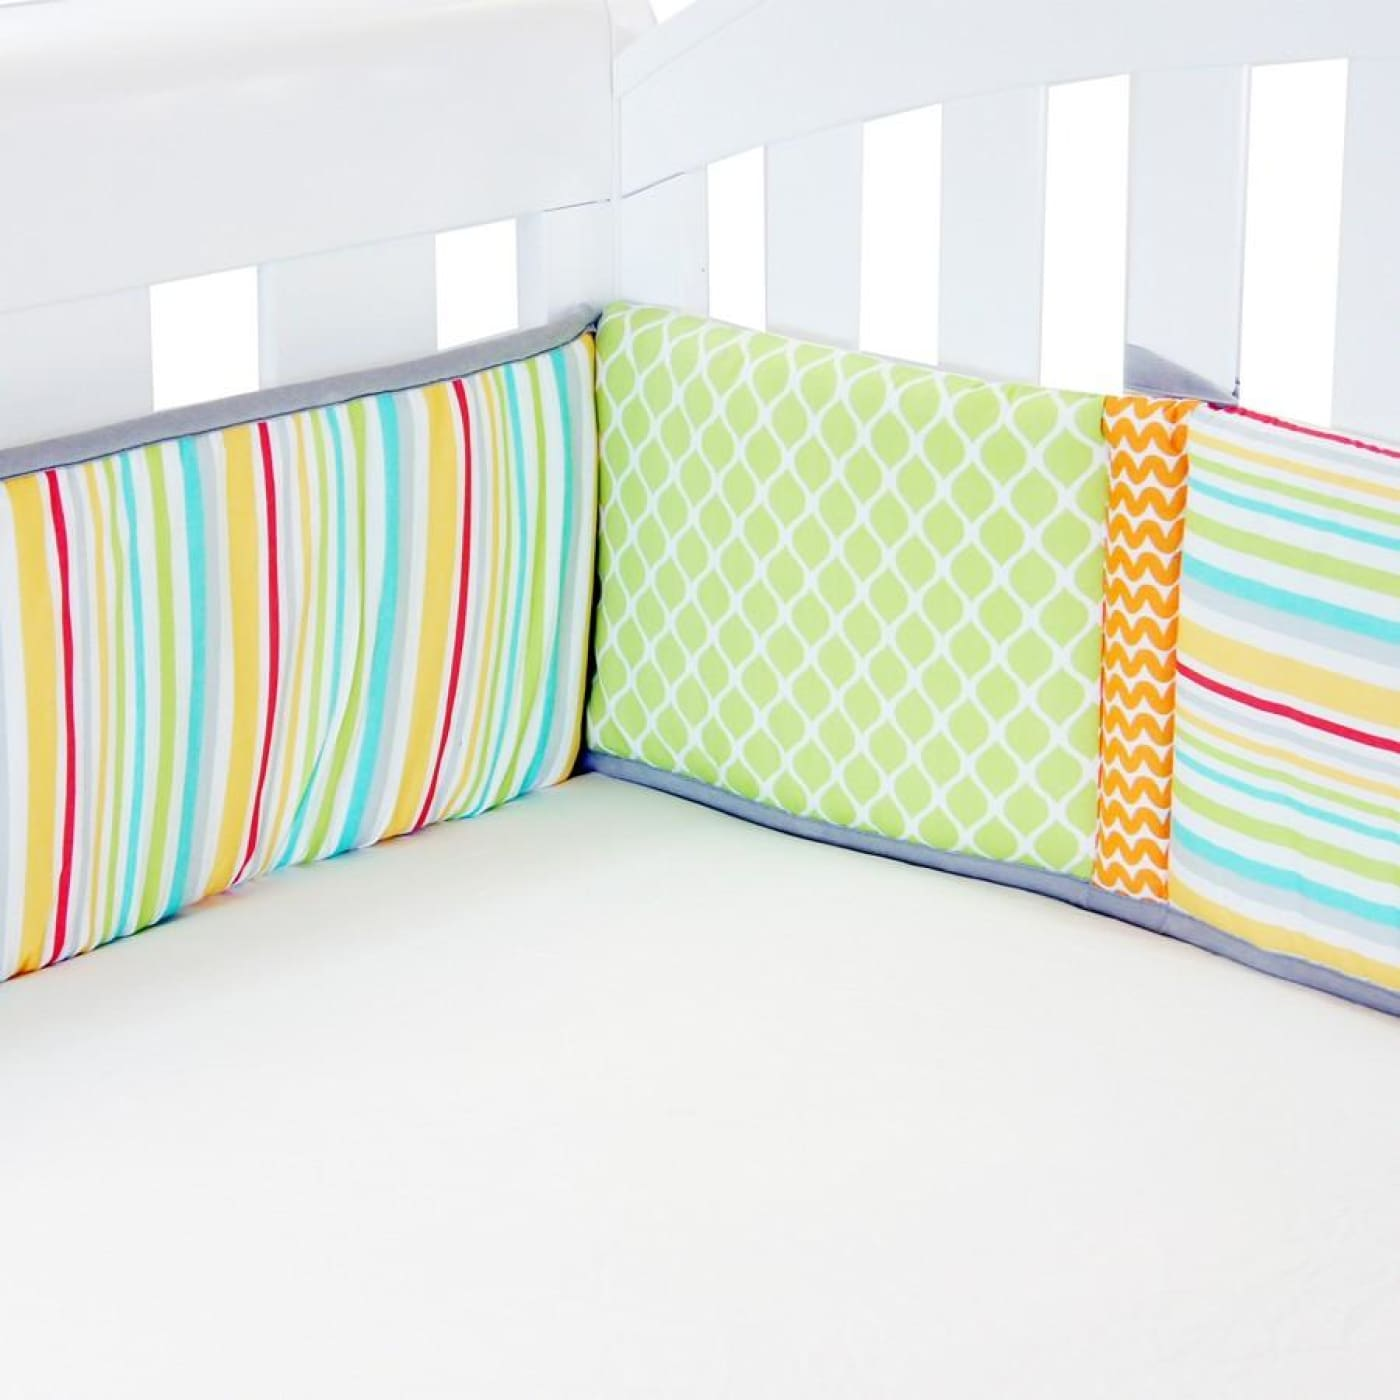 Amani Bebe Cot Bumper - Up In The Sky - NURSERY & BEDTIME - COT BUMPERS